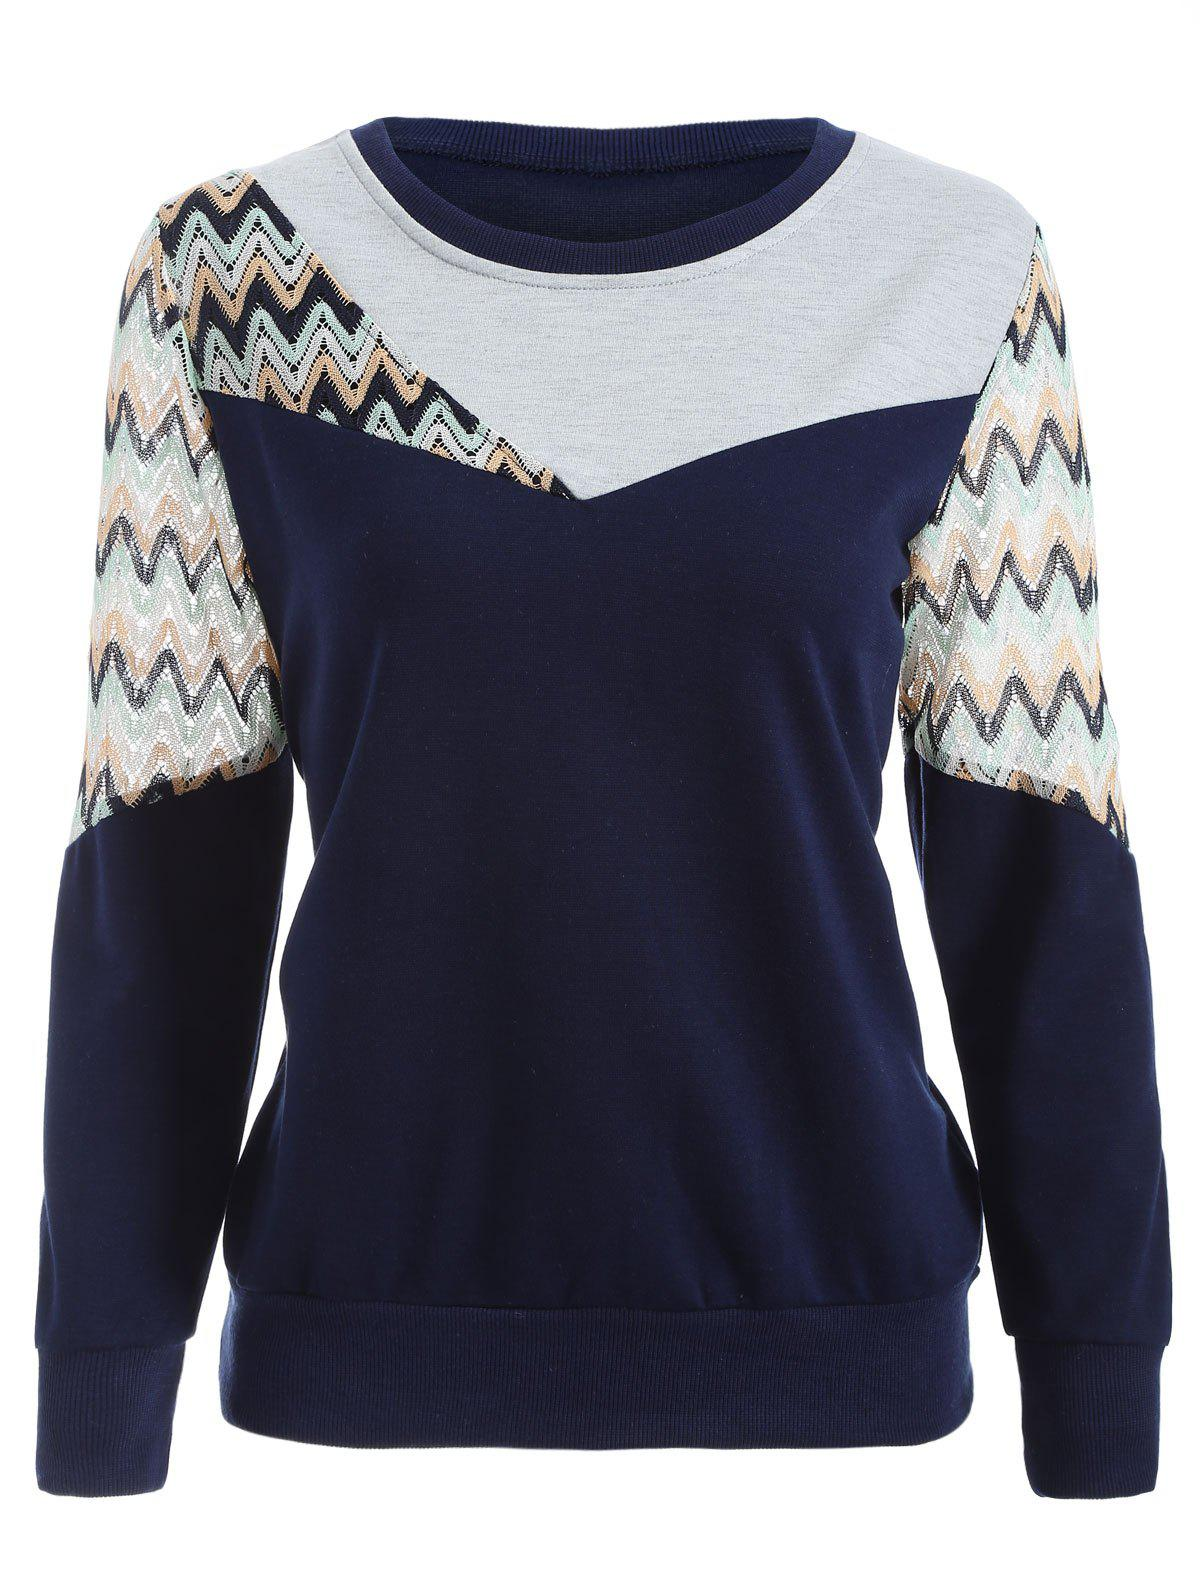 Crew Neck Panelled Sweatshirt - PURPLISH BLUE M